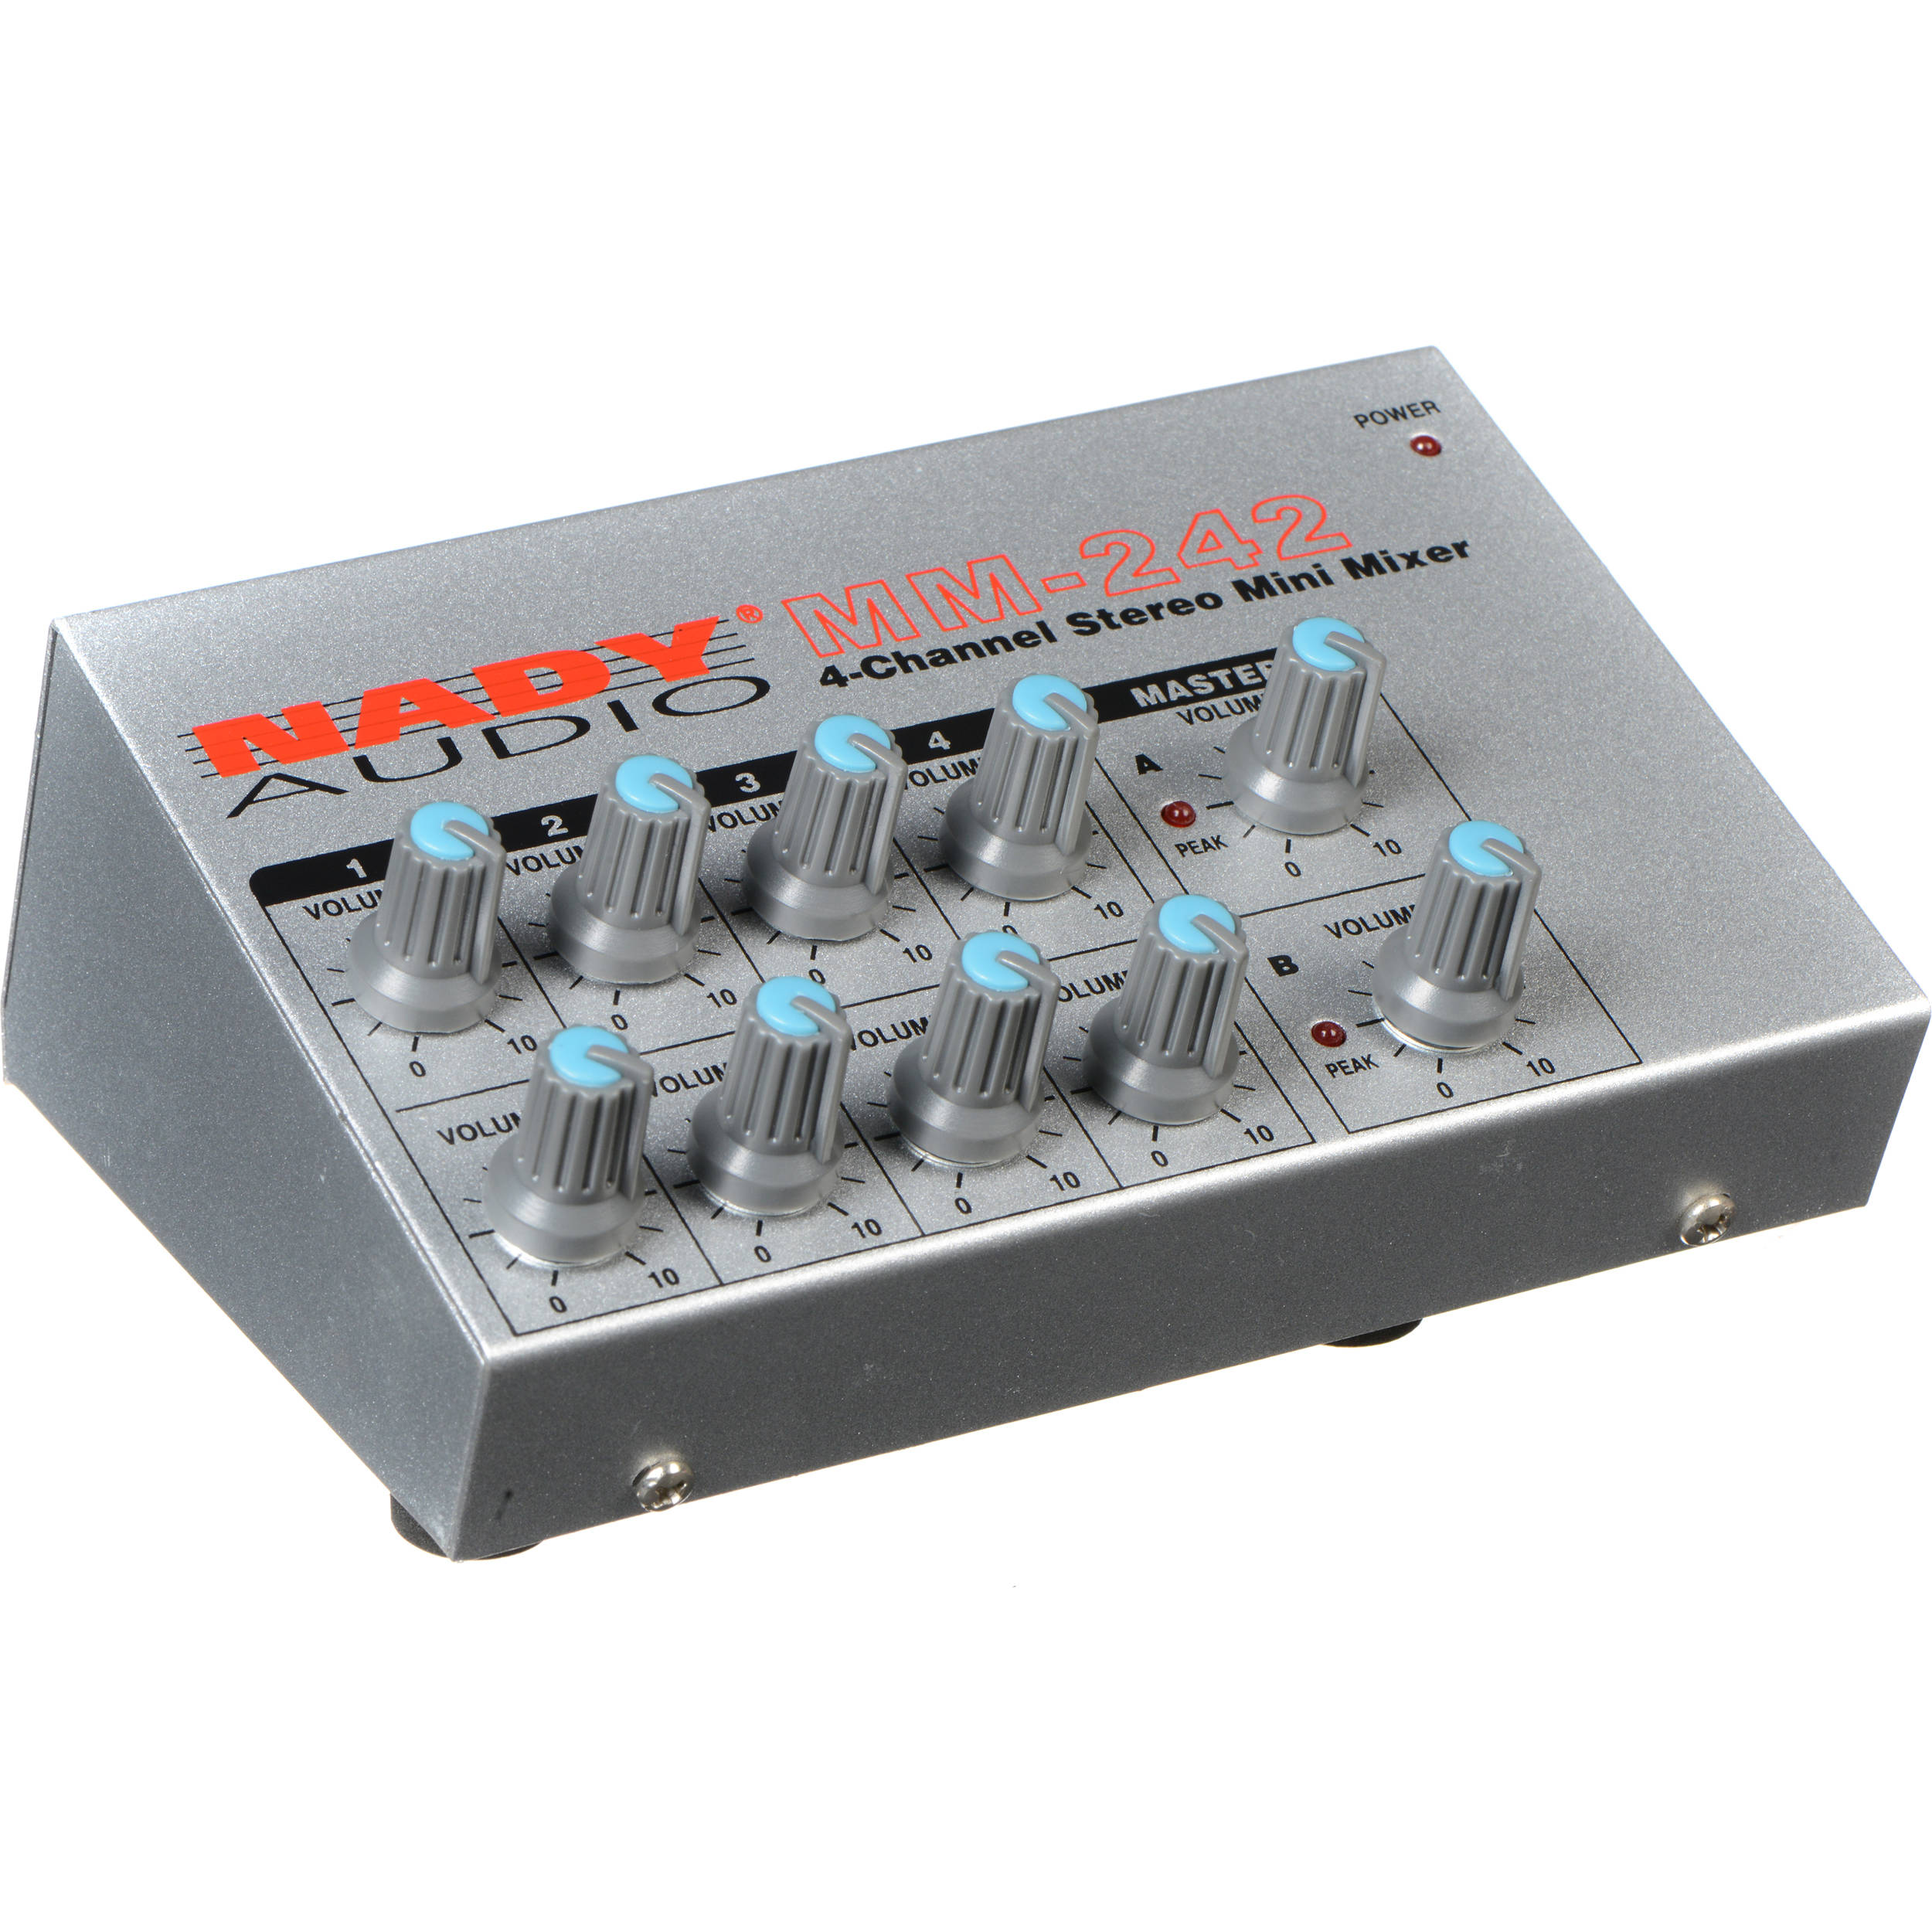 Analog Utility Mixers Bh Photo Video Audio Projects Circuits 7 Nady Mm 242 4 8 Channel Mono Stereo Mini Mixer